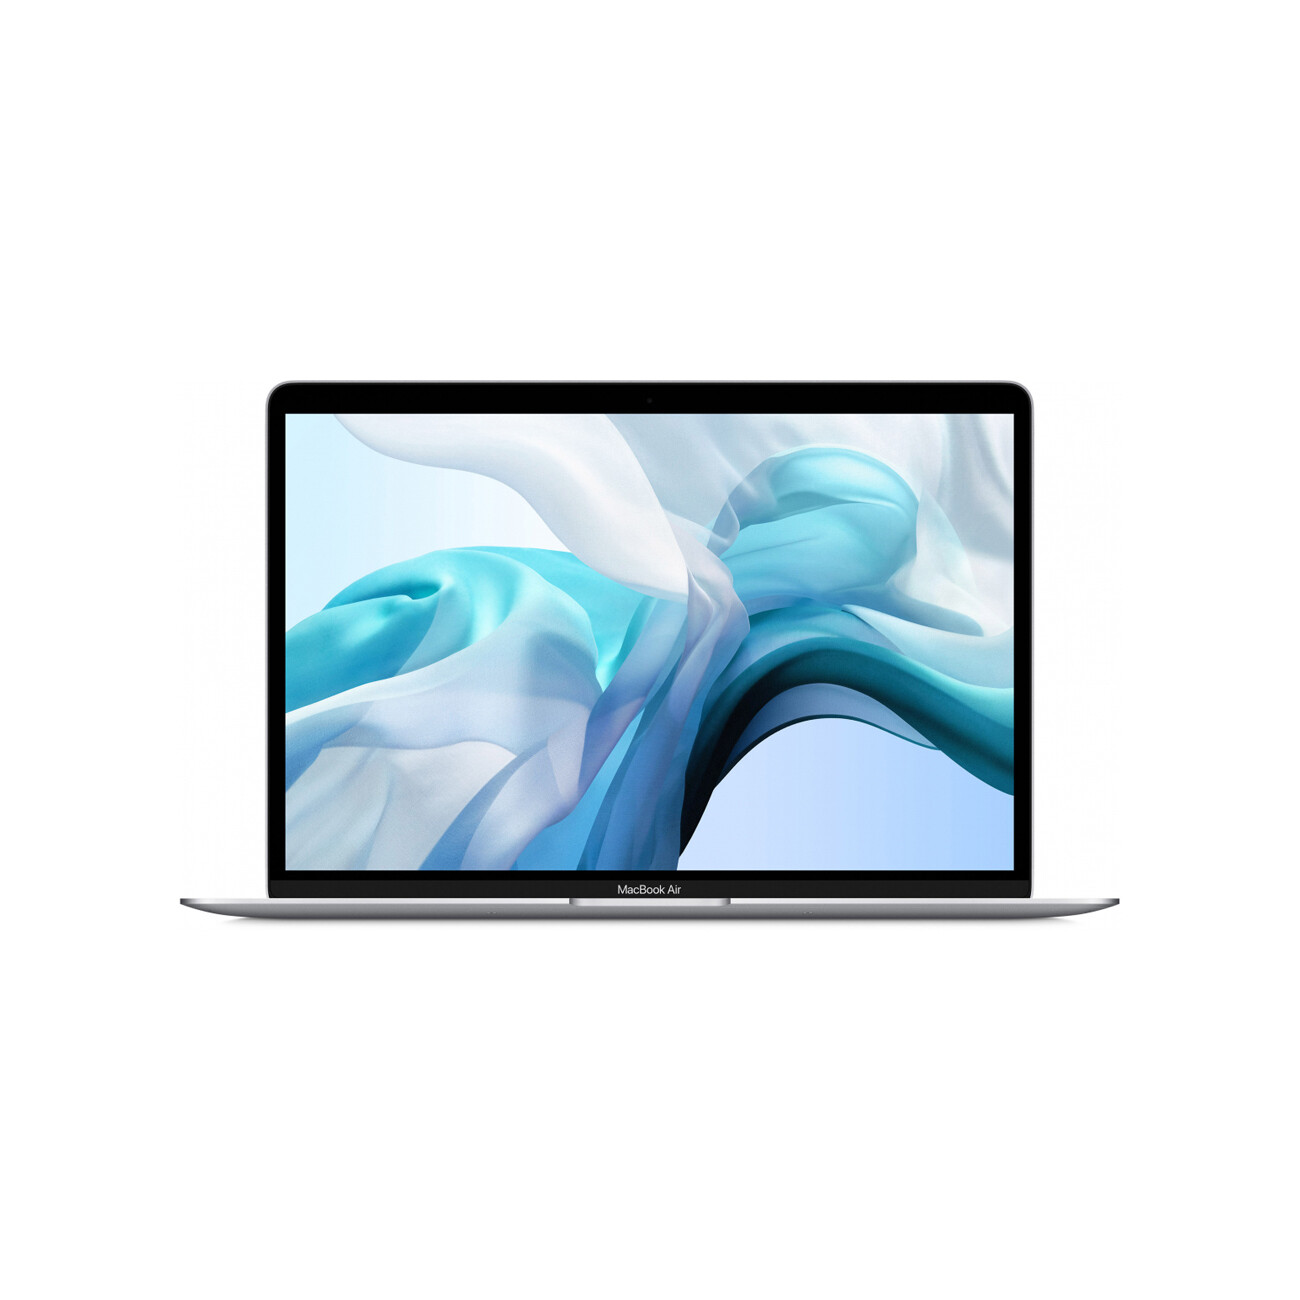 "Apple MacBook Air 13"" Quad Core i5 1,1 ГГц, 8 ГБ, 512 ГБ SSD, серебристый"